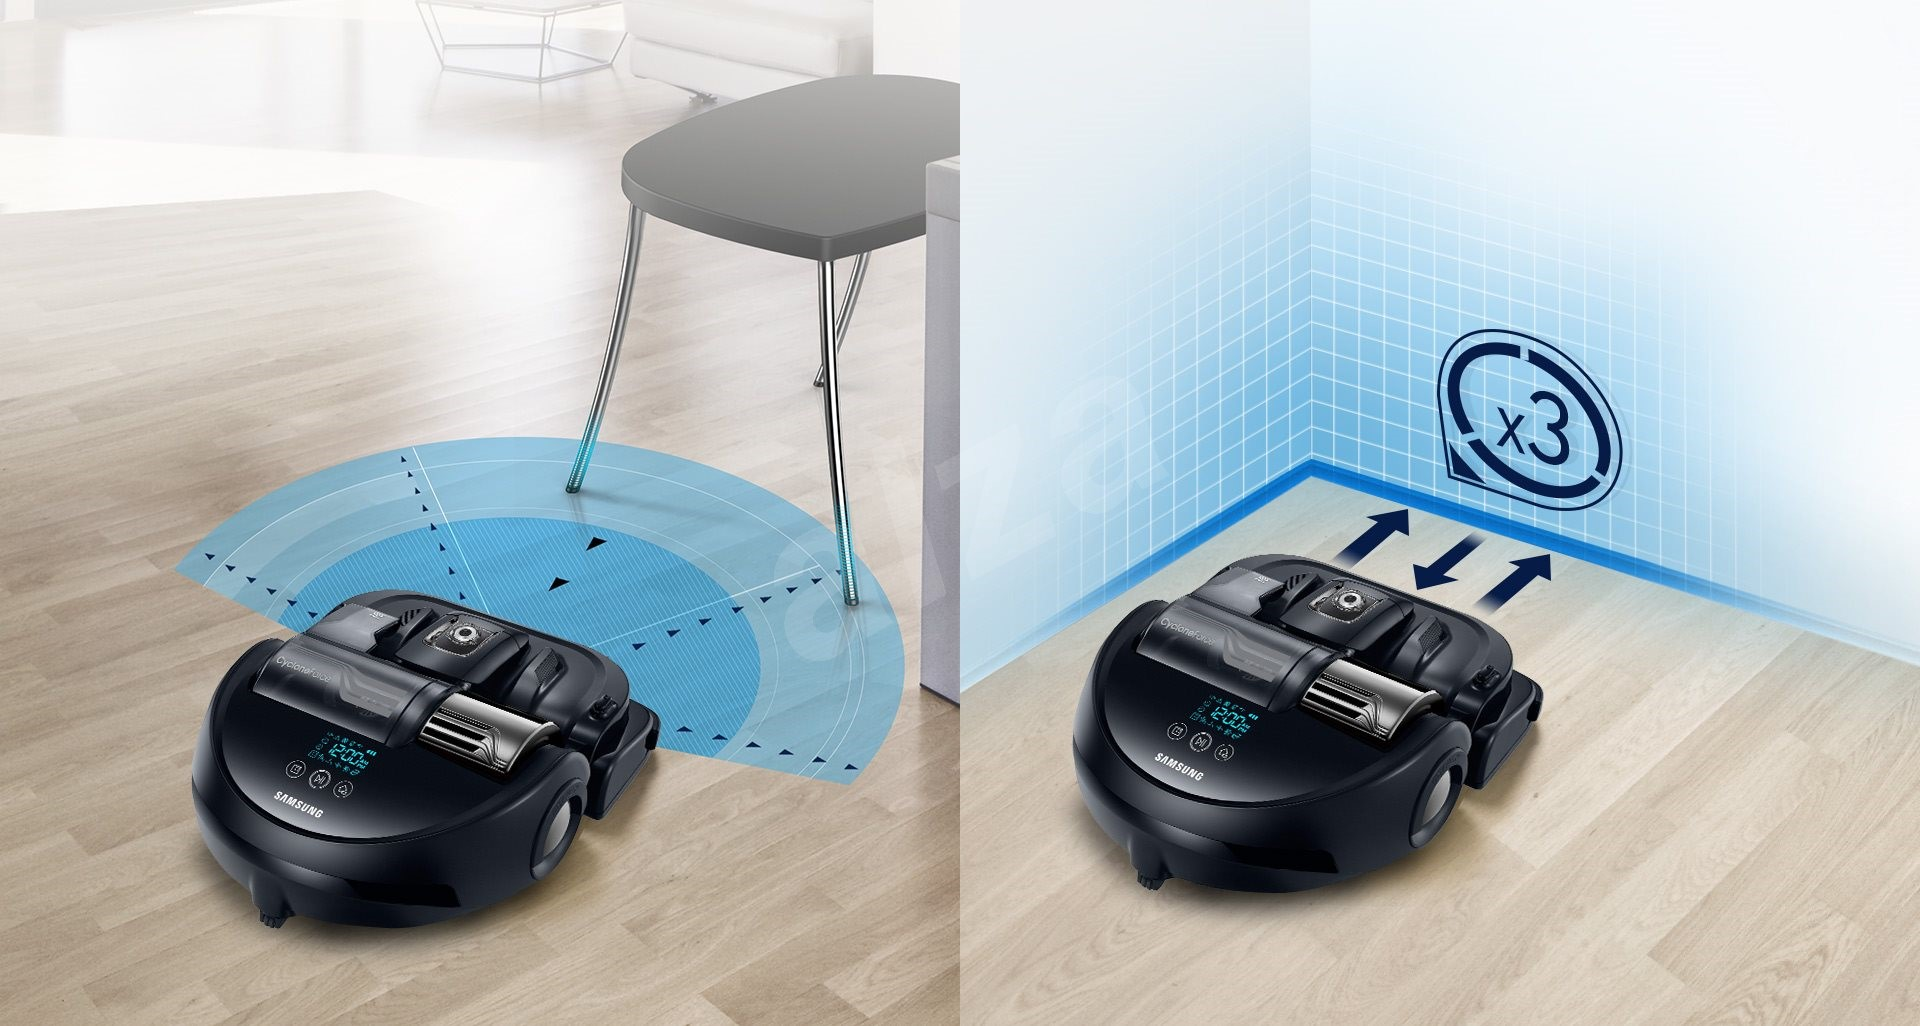 robotic vacuum cleaner Vacuum 'a' lot brings you the very best robotic vacuum cleaners, accessories and the best robot vacuum cleaner reviews 2018 - visit now for our best offers.